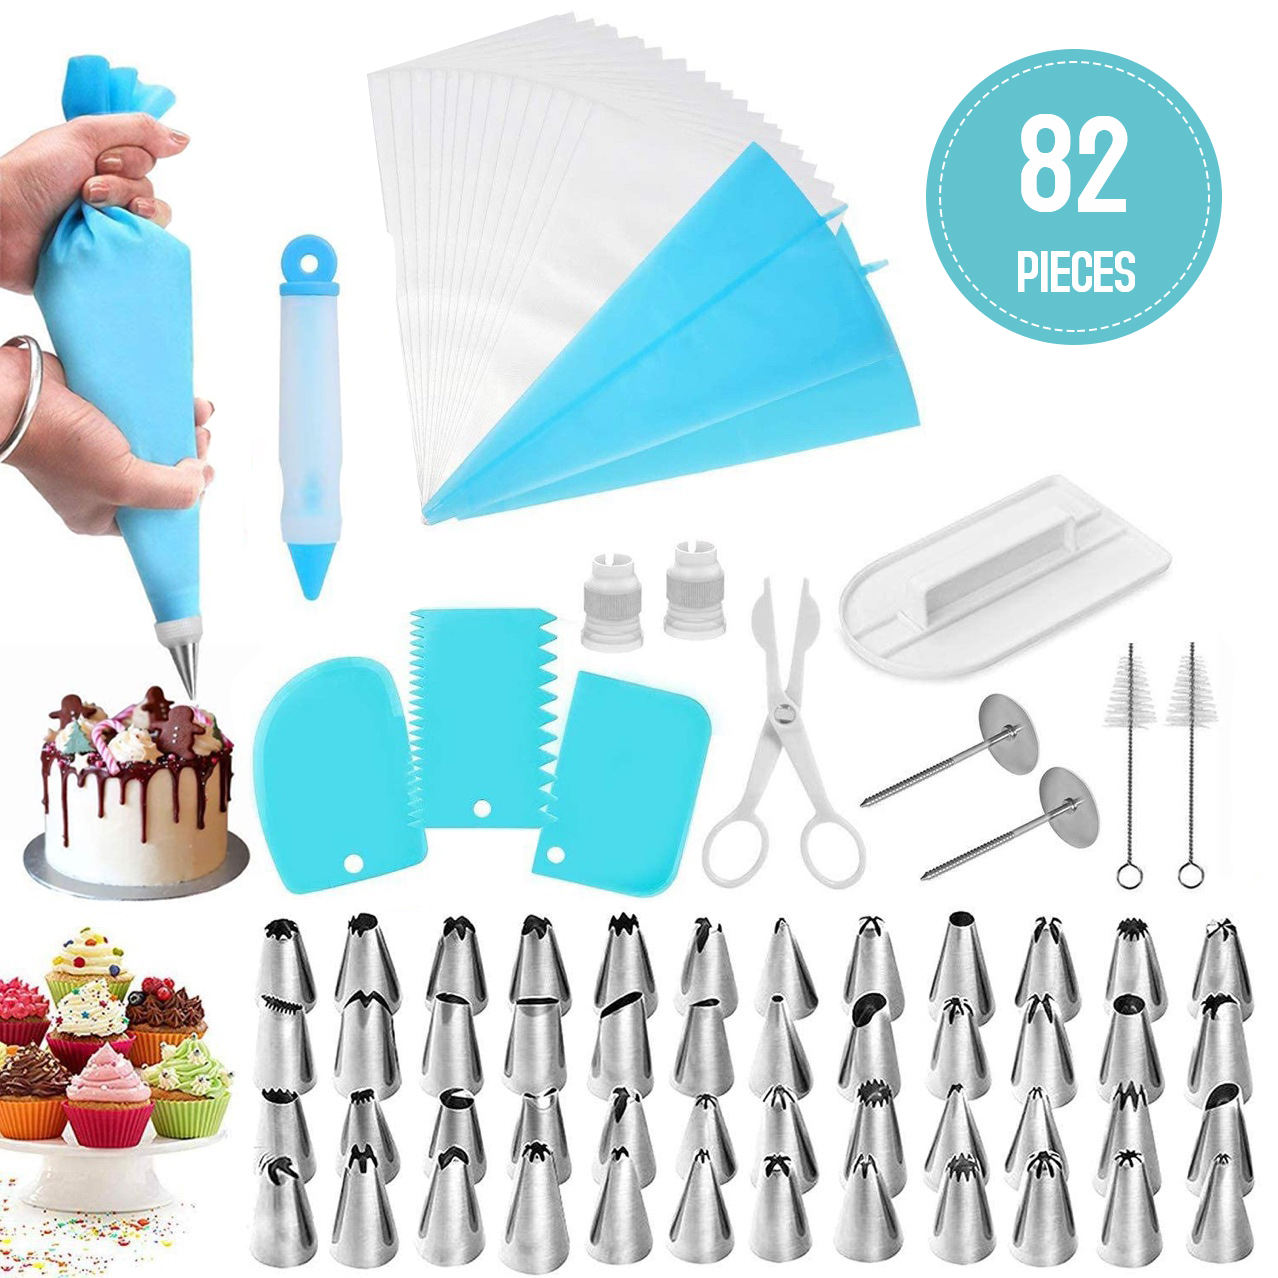 82PCS Cake Decorating Supplies Kit Set Baking Tool Turntable Stand Equipment//